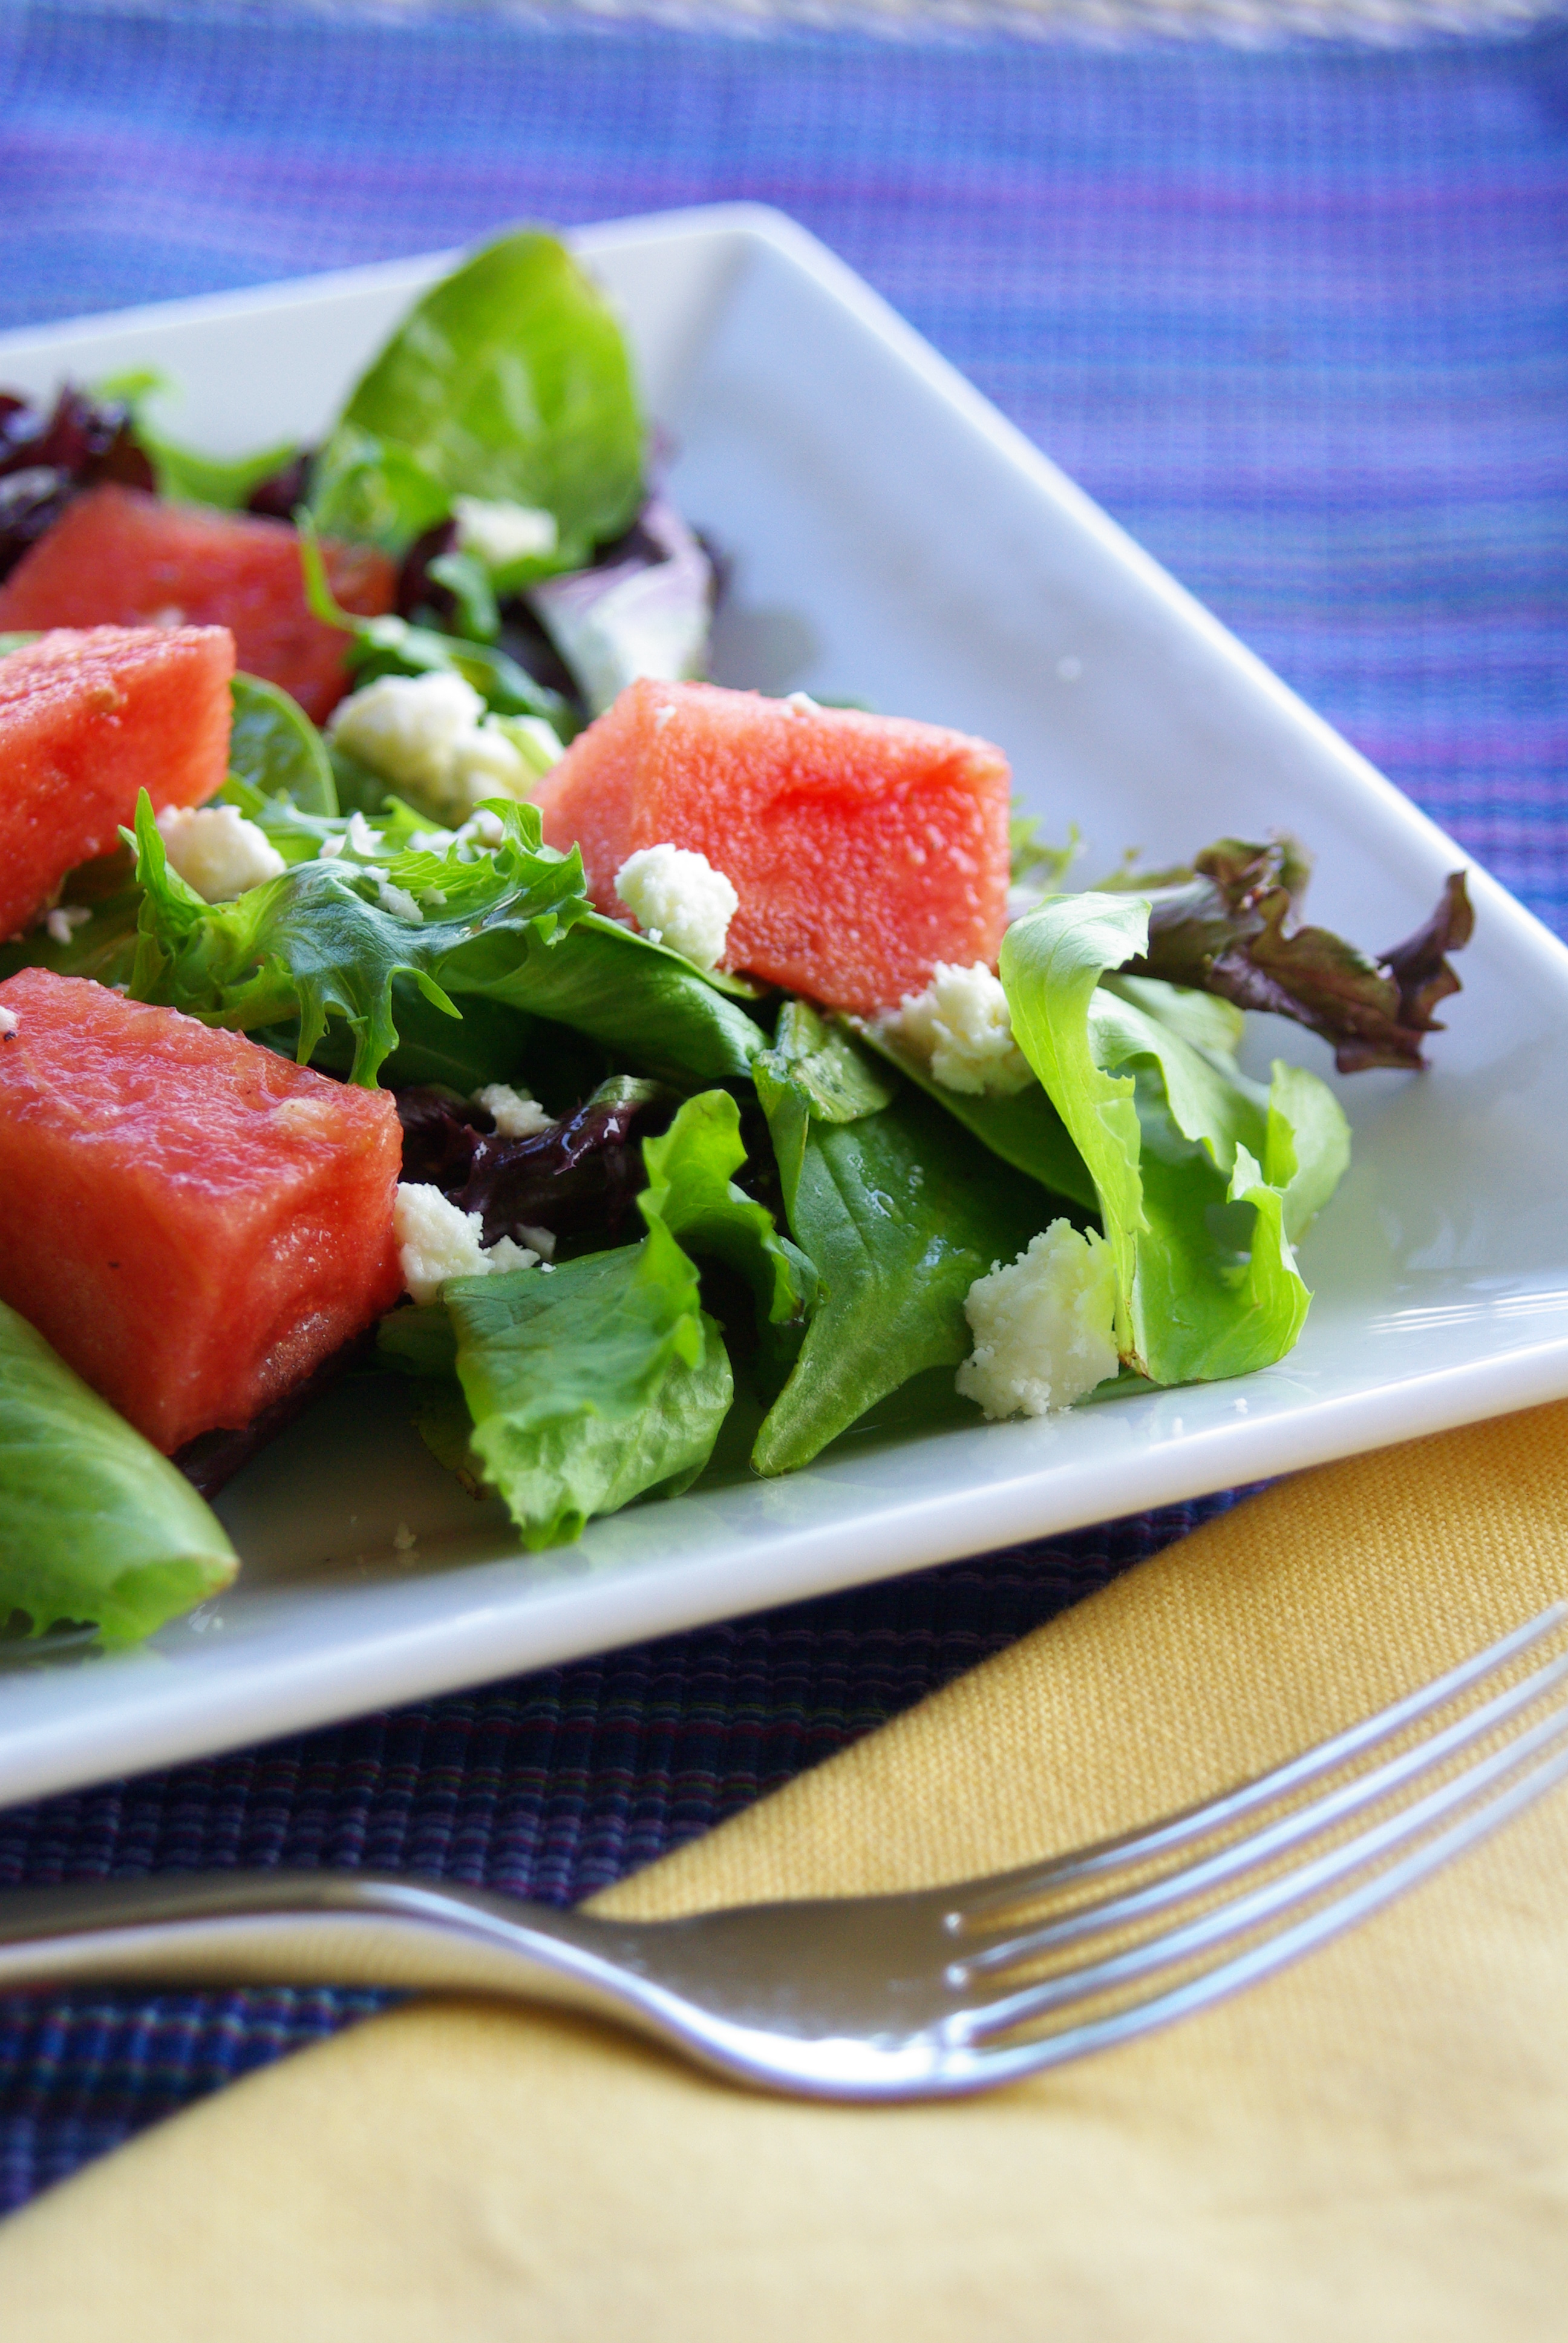 Watermelon Feta Salad premii bet at home mobilna free-bet z bet at home Buffet